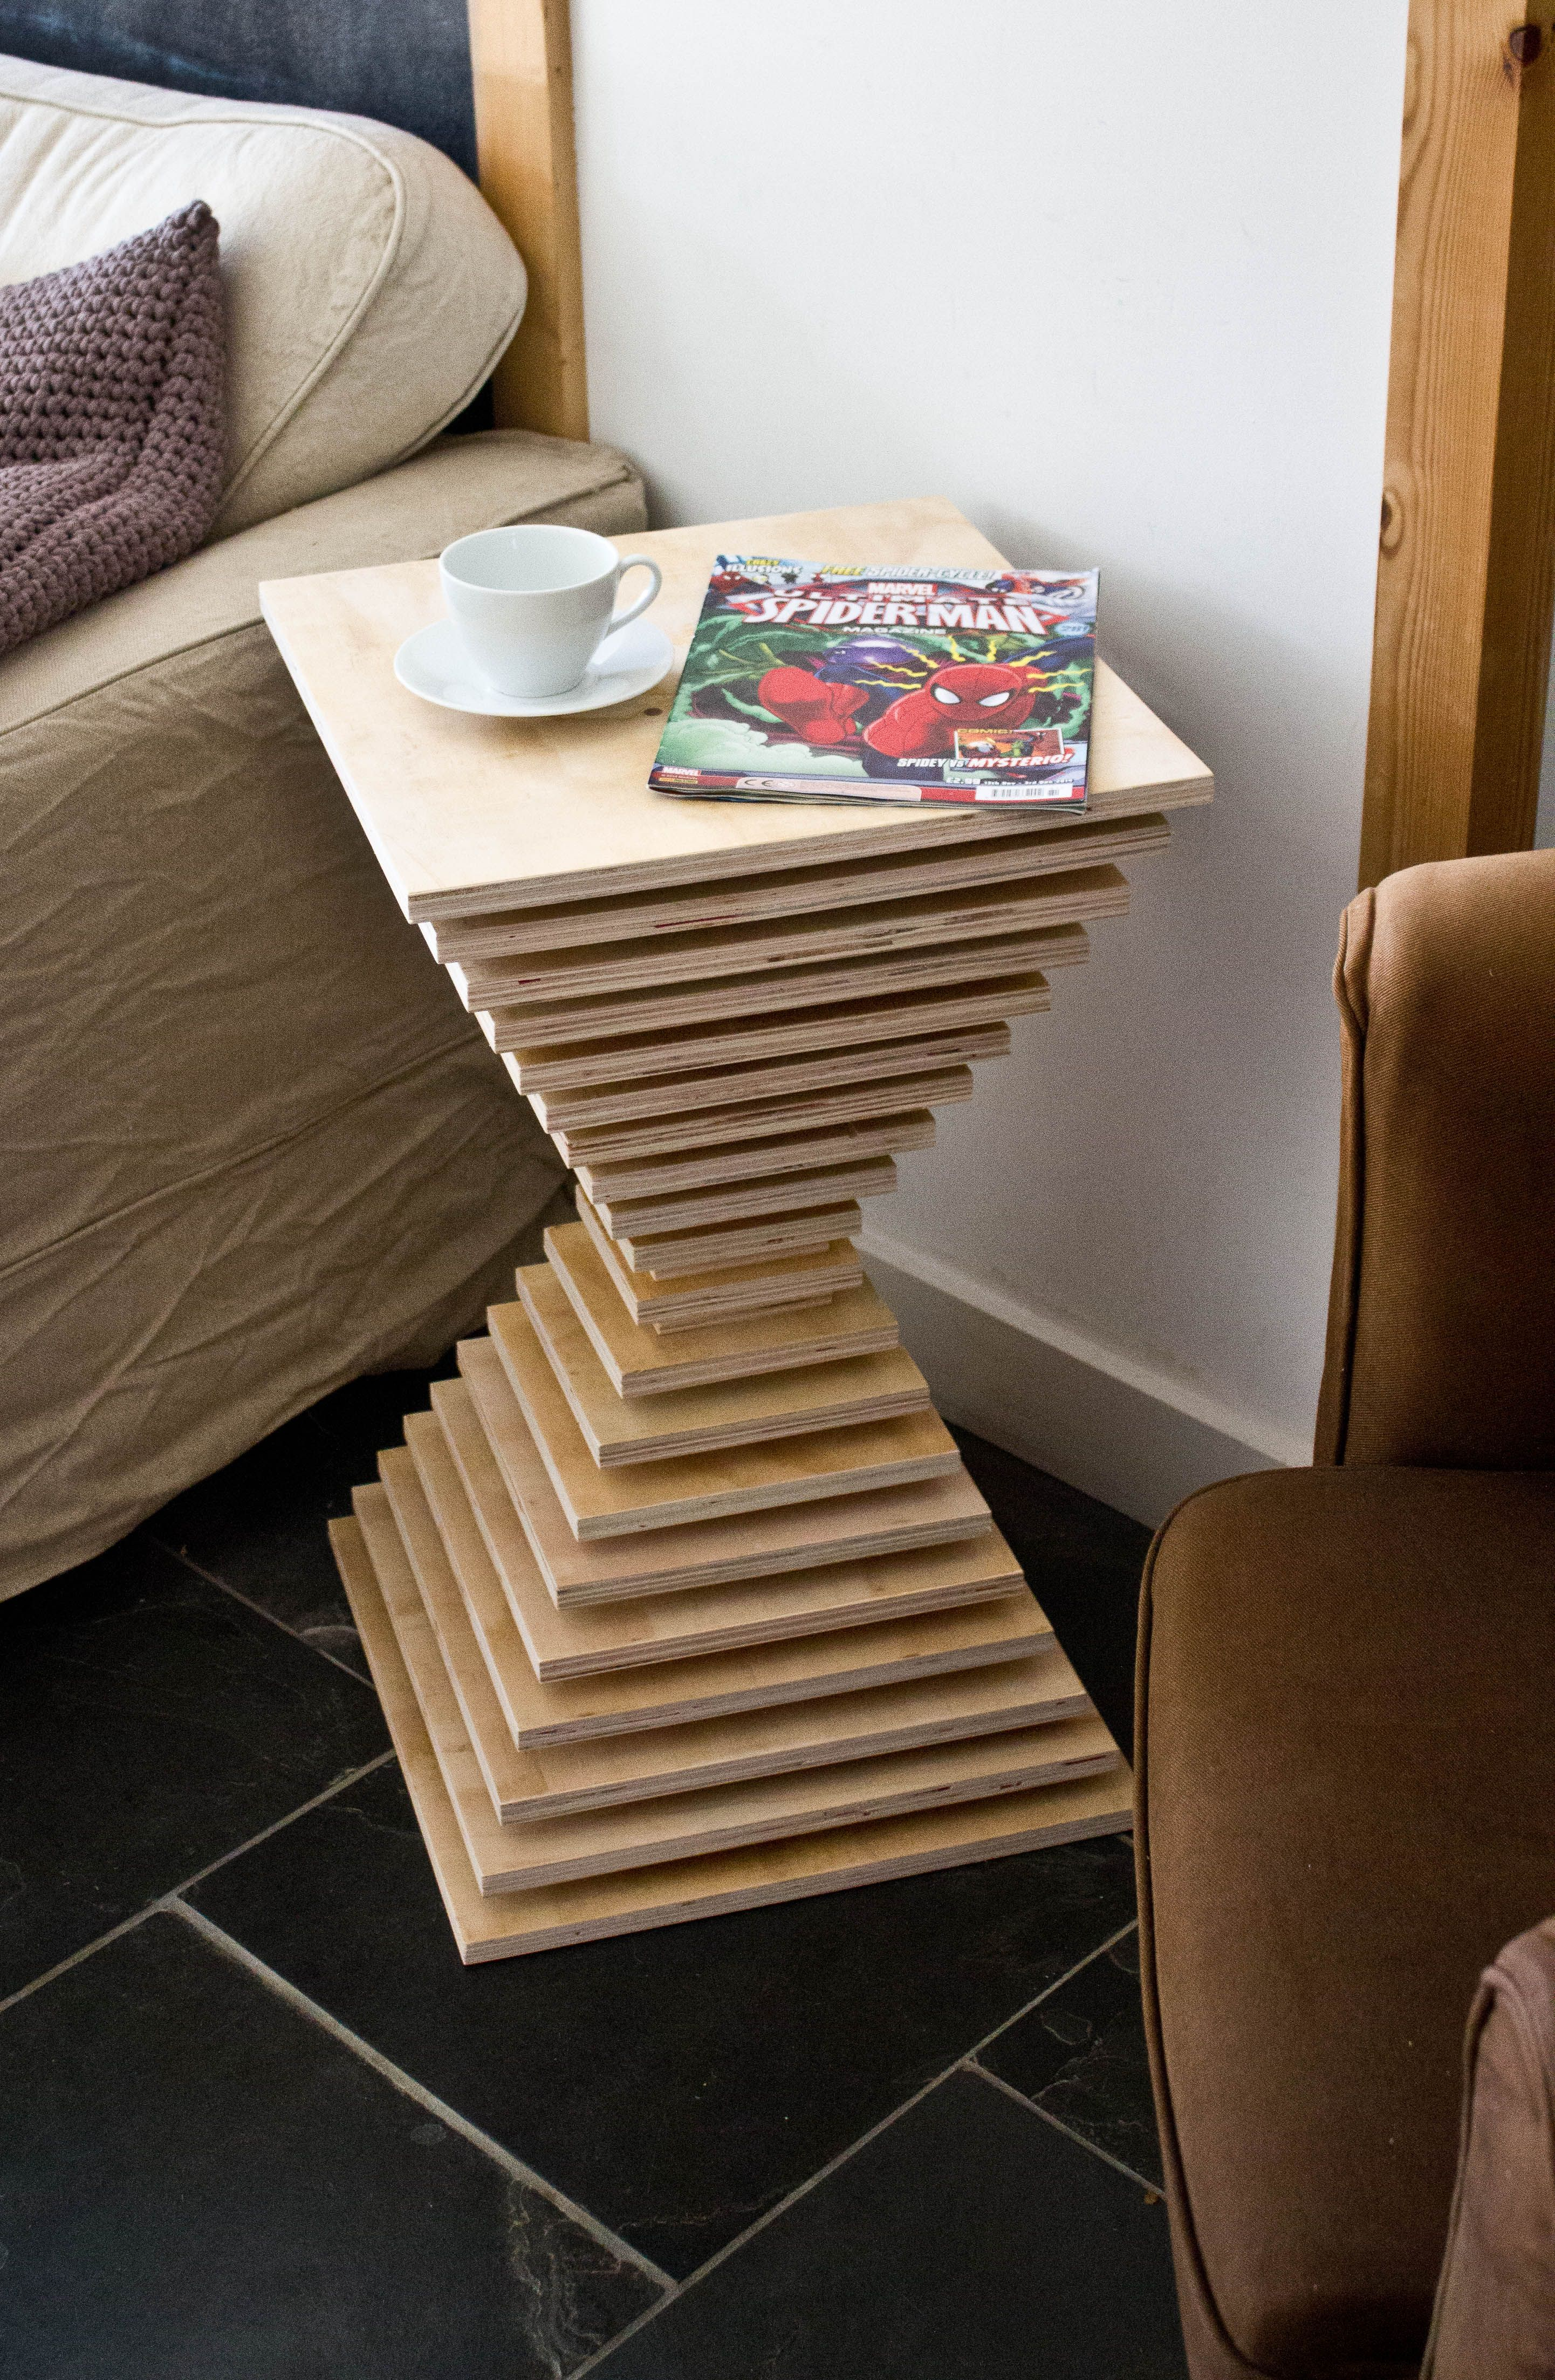 Joob Meubilair Table Made From Offcuts Of Plywood From A Shop Fitting Job In